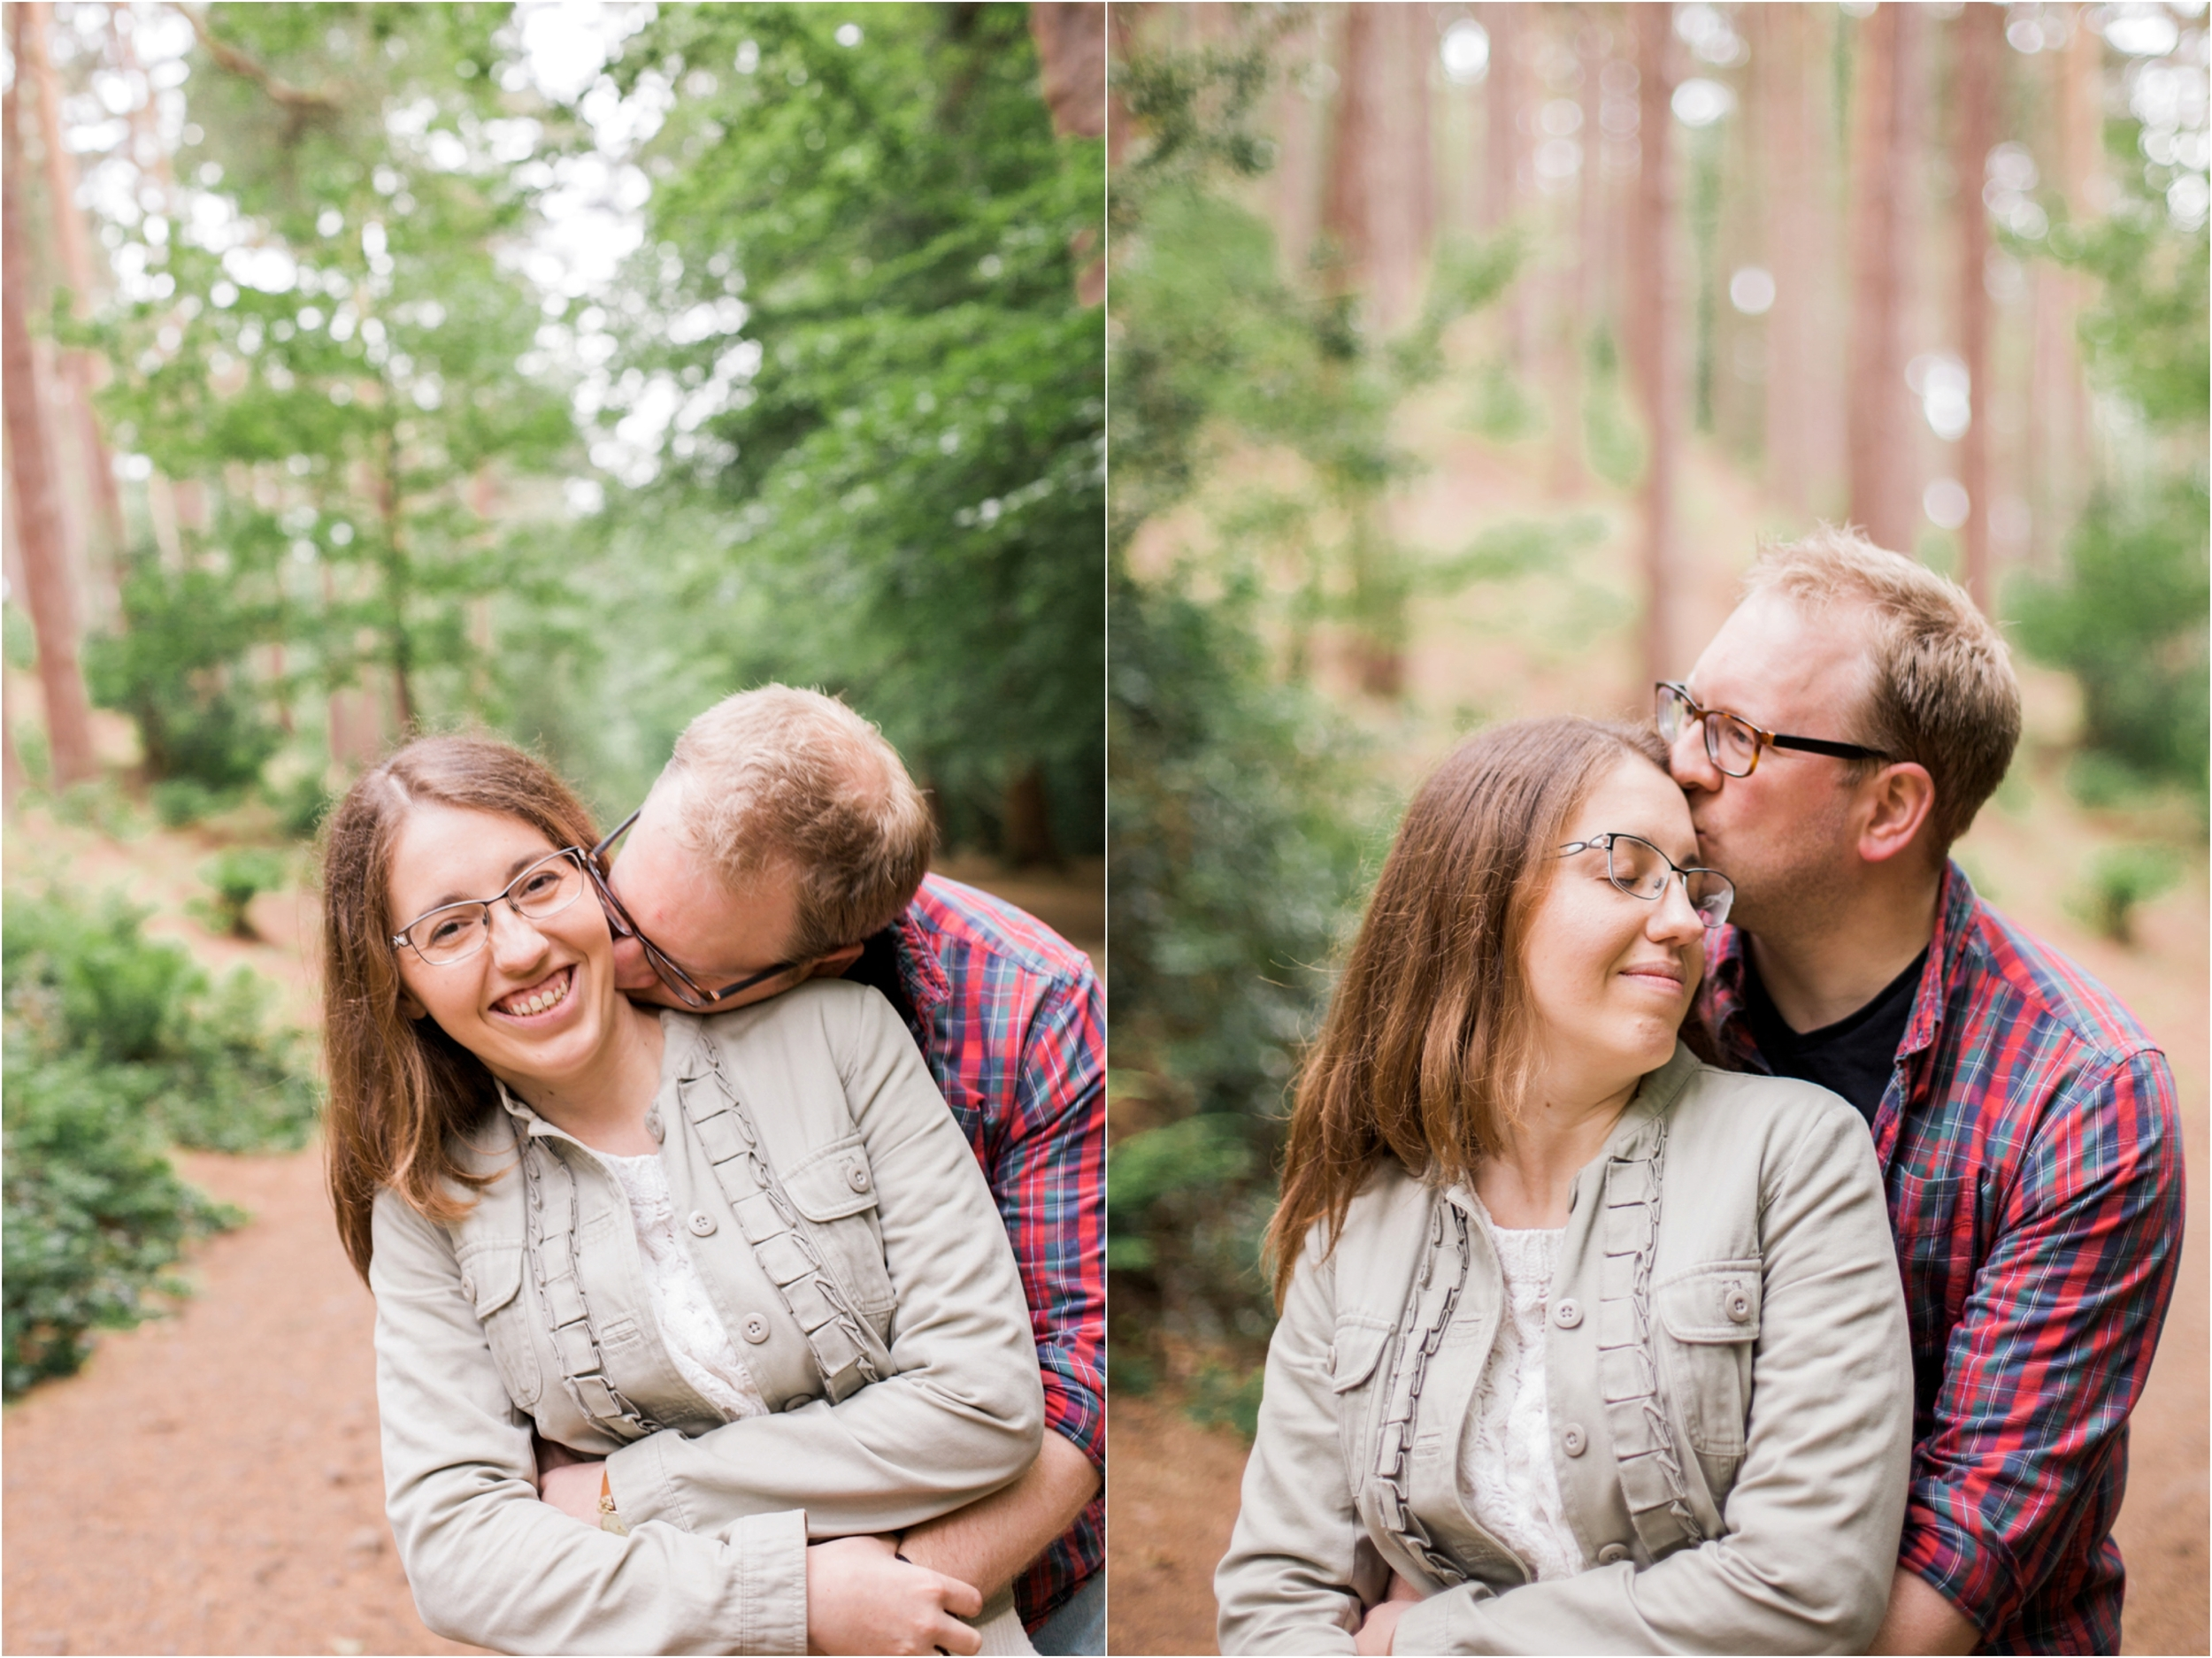 010Charlotte & Kelvin - Lickey Hills Engagement - Sophie Evans Photography - Warwickshire Wedding Photographer.jpg